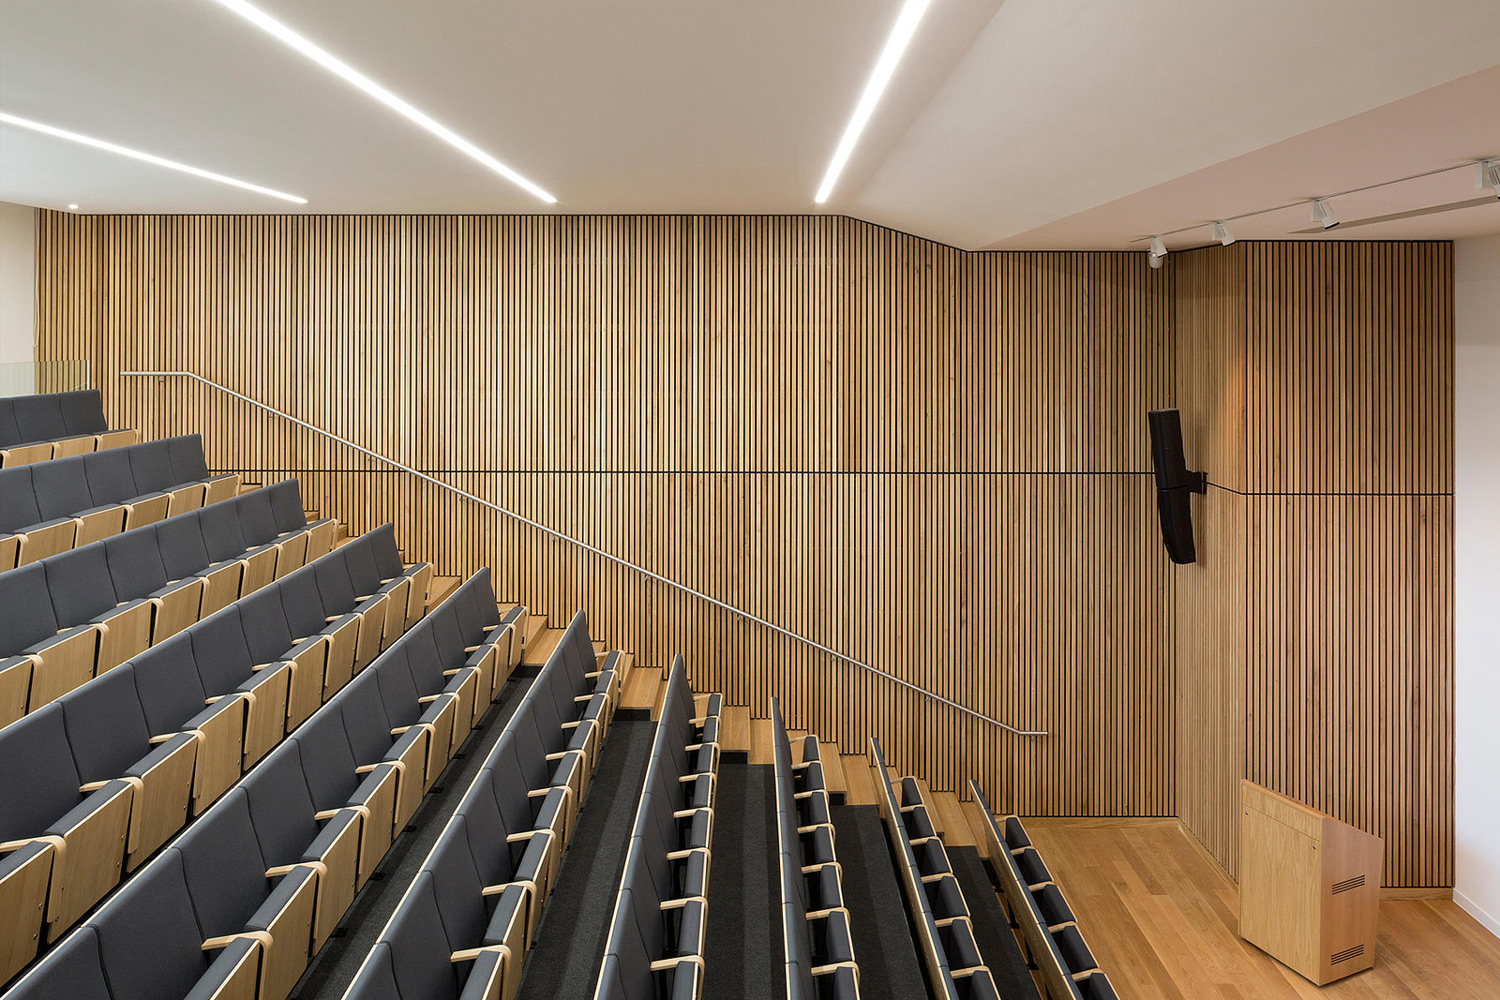 Vertical Wood Slat Wall Slatted Timber Suspended Ceilings Slatted Timber Wall Panels